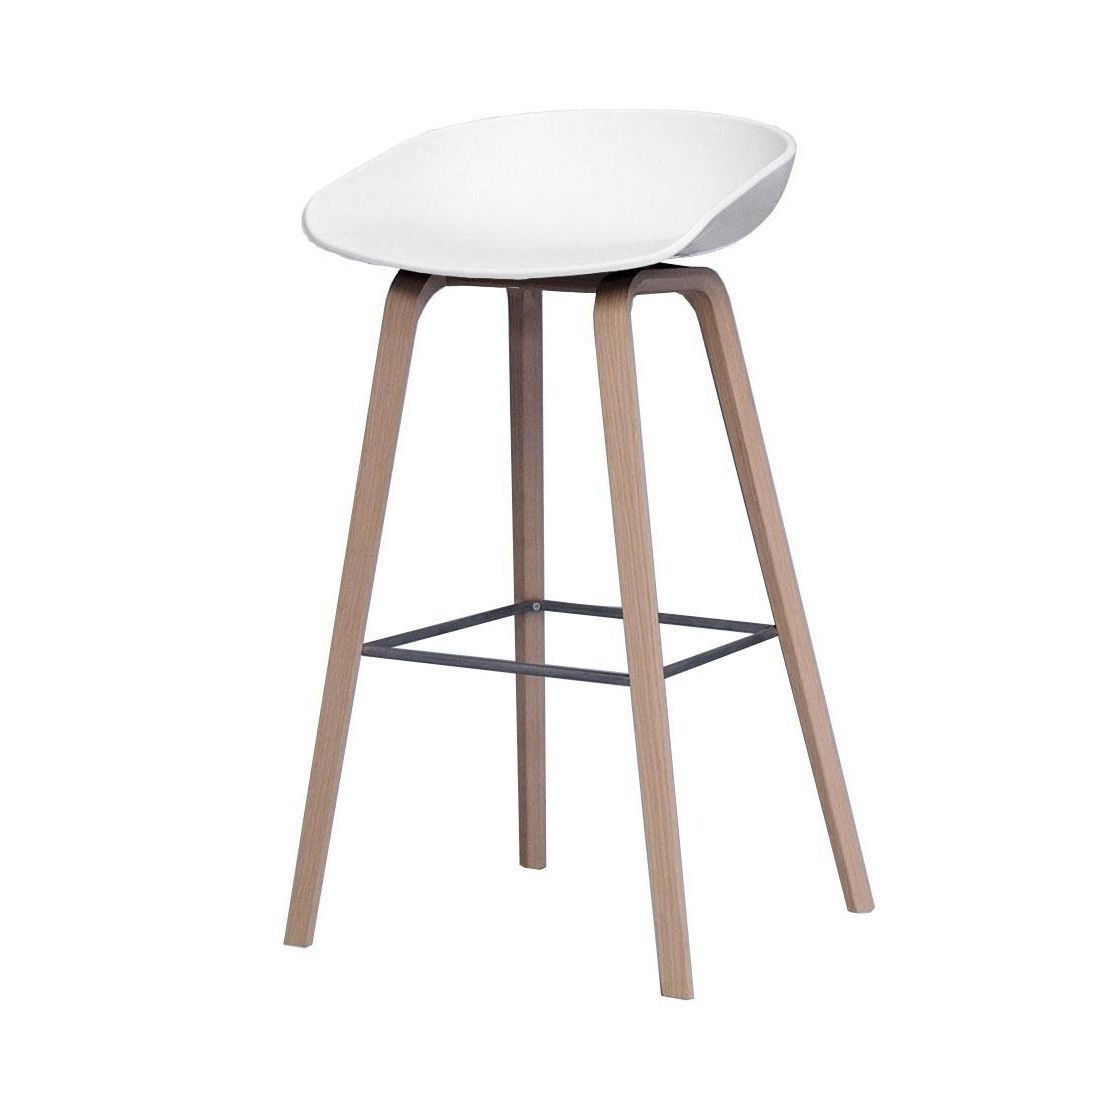 About a stool aas32 barhocker 65cm hay for Barhocker outlet